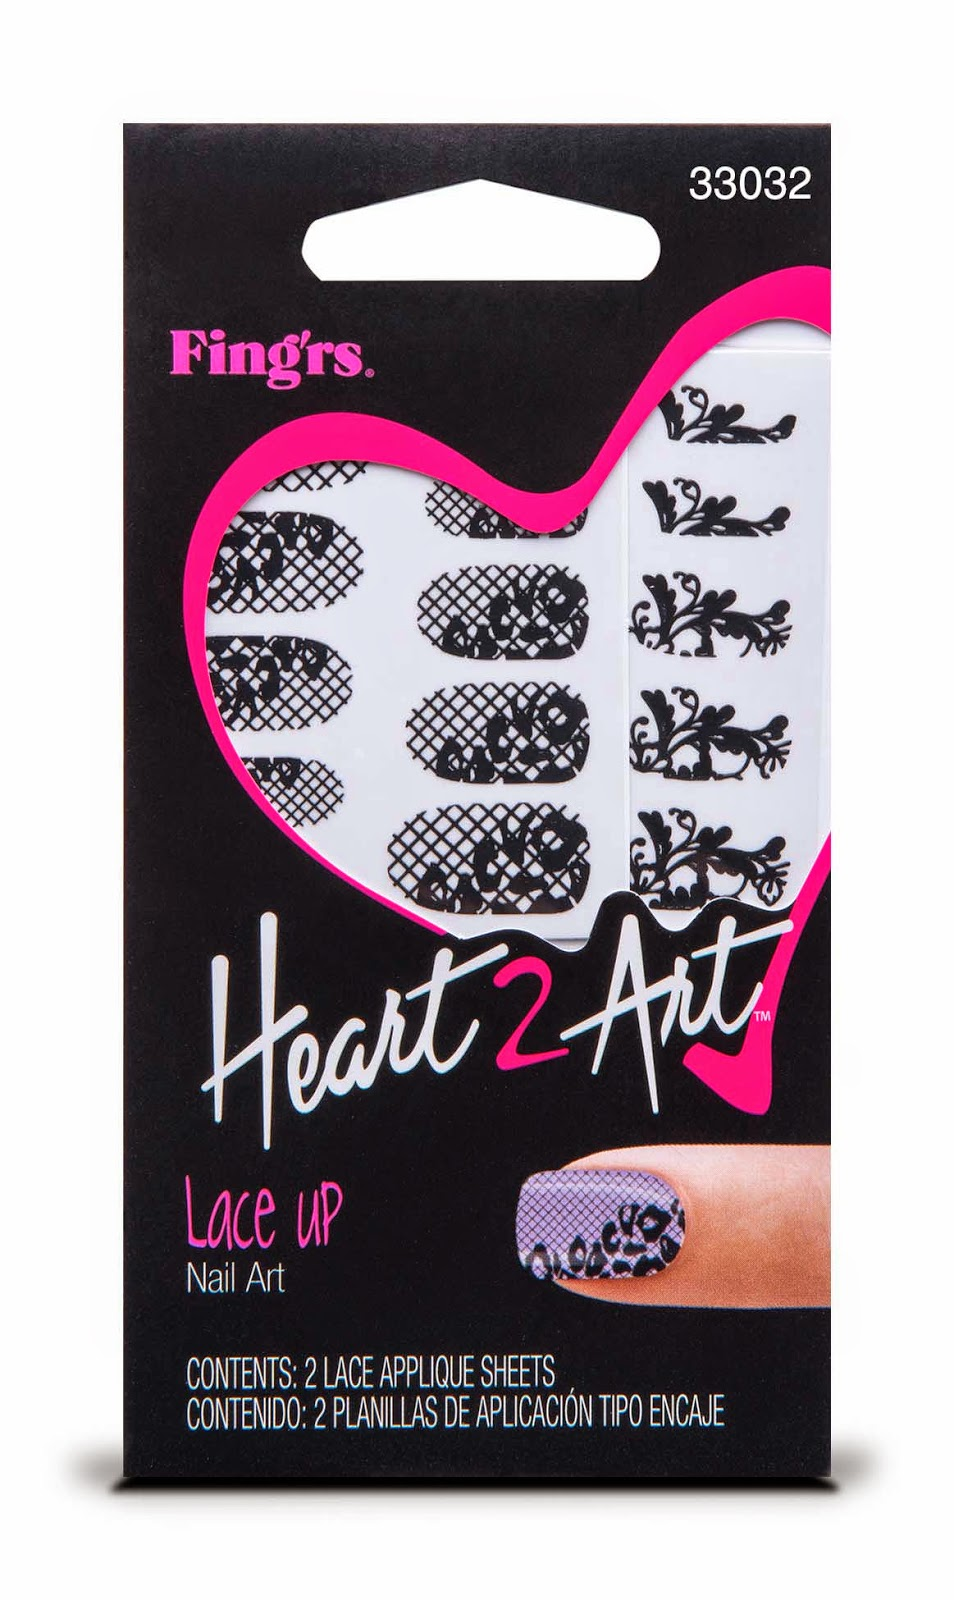 Heart2Art - Lace up